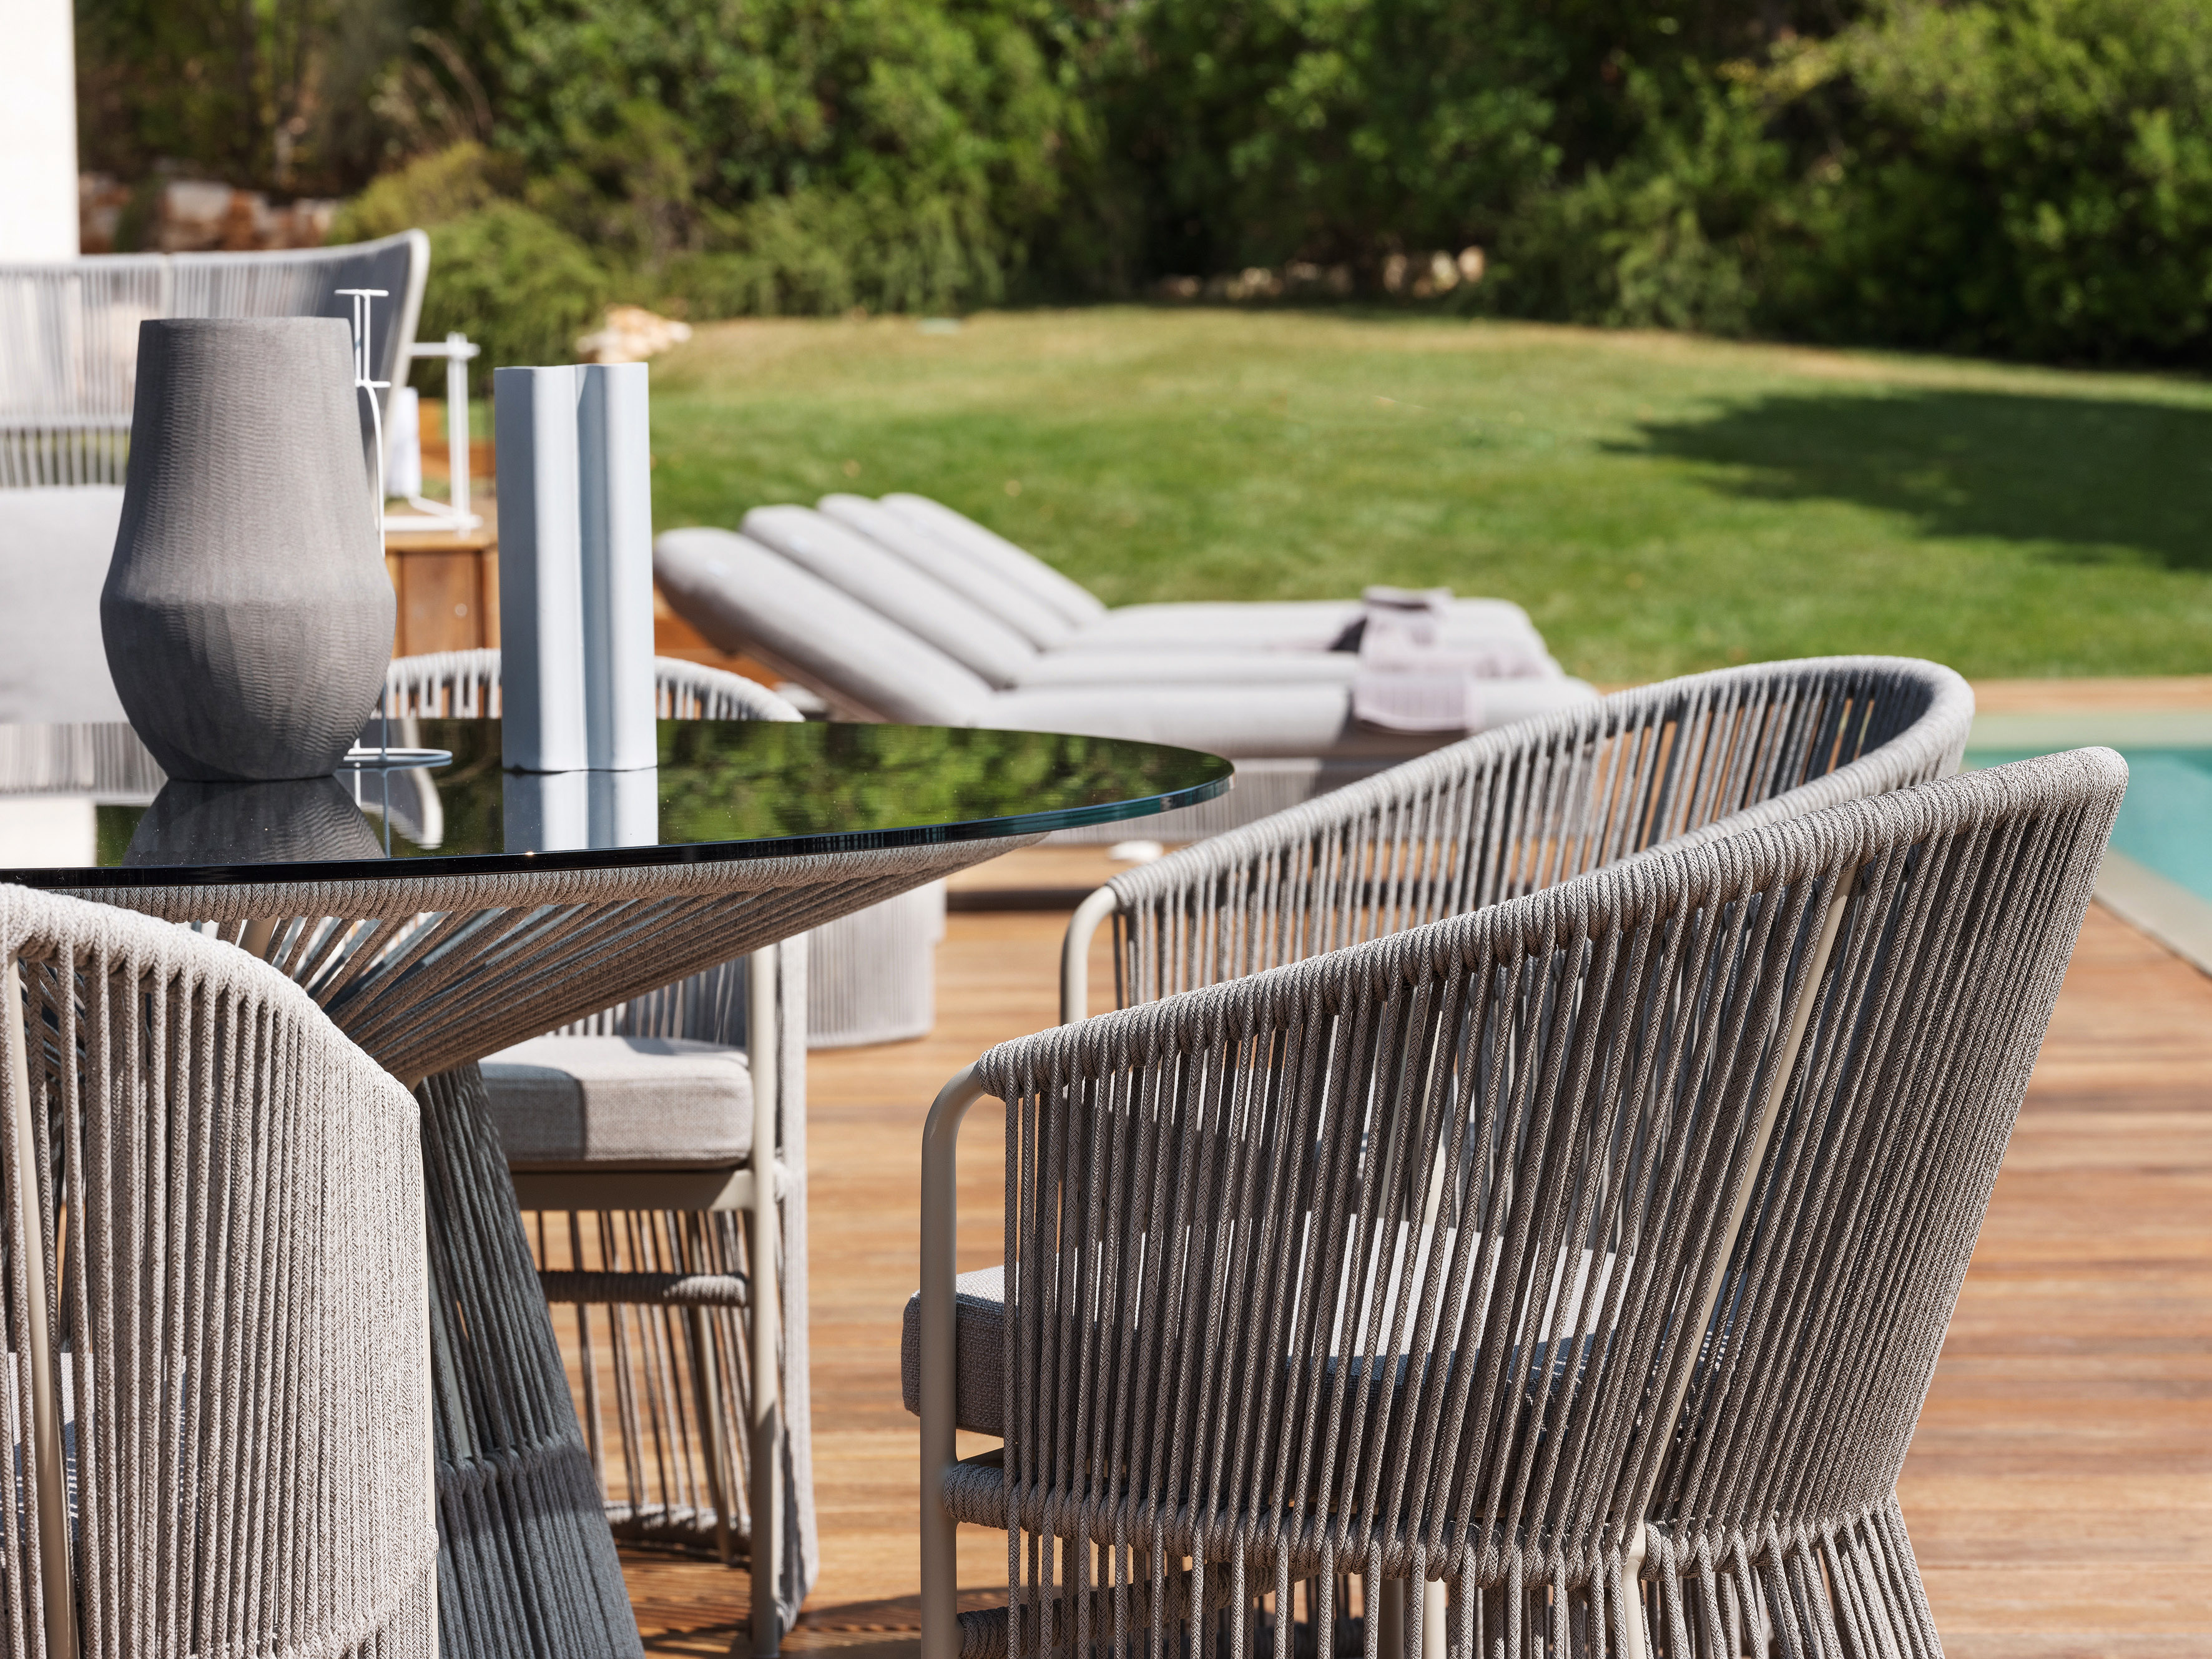 Superbe Garden Furniture HI RES